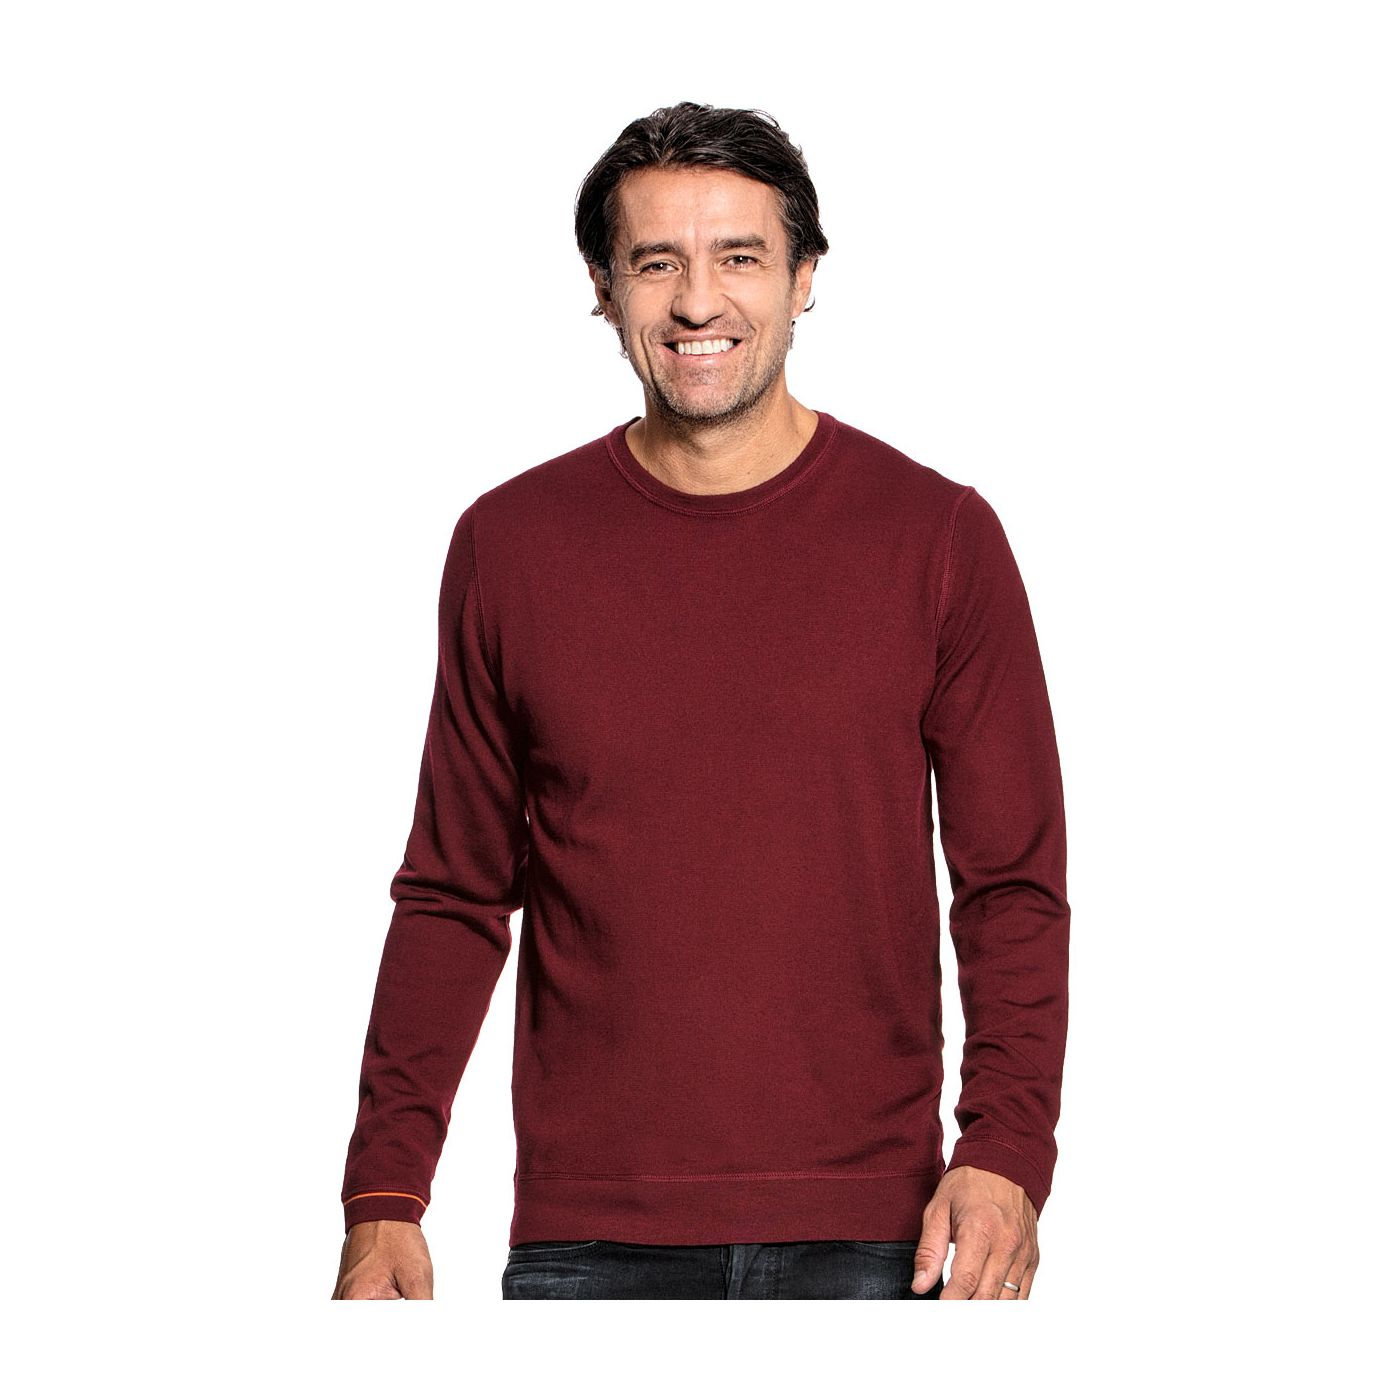 Crew neck pullover for men made of Merino wool in Red